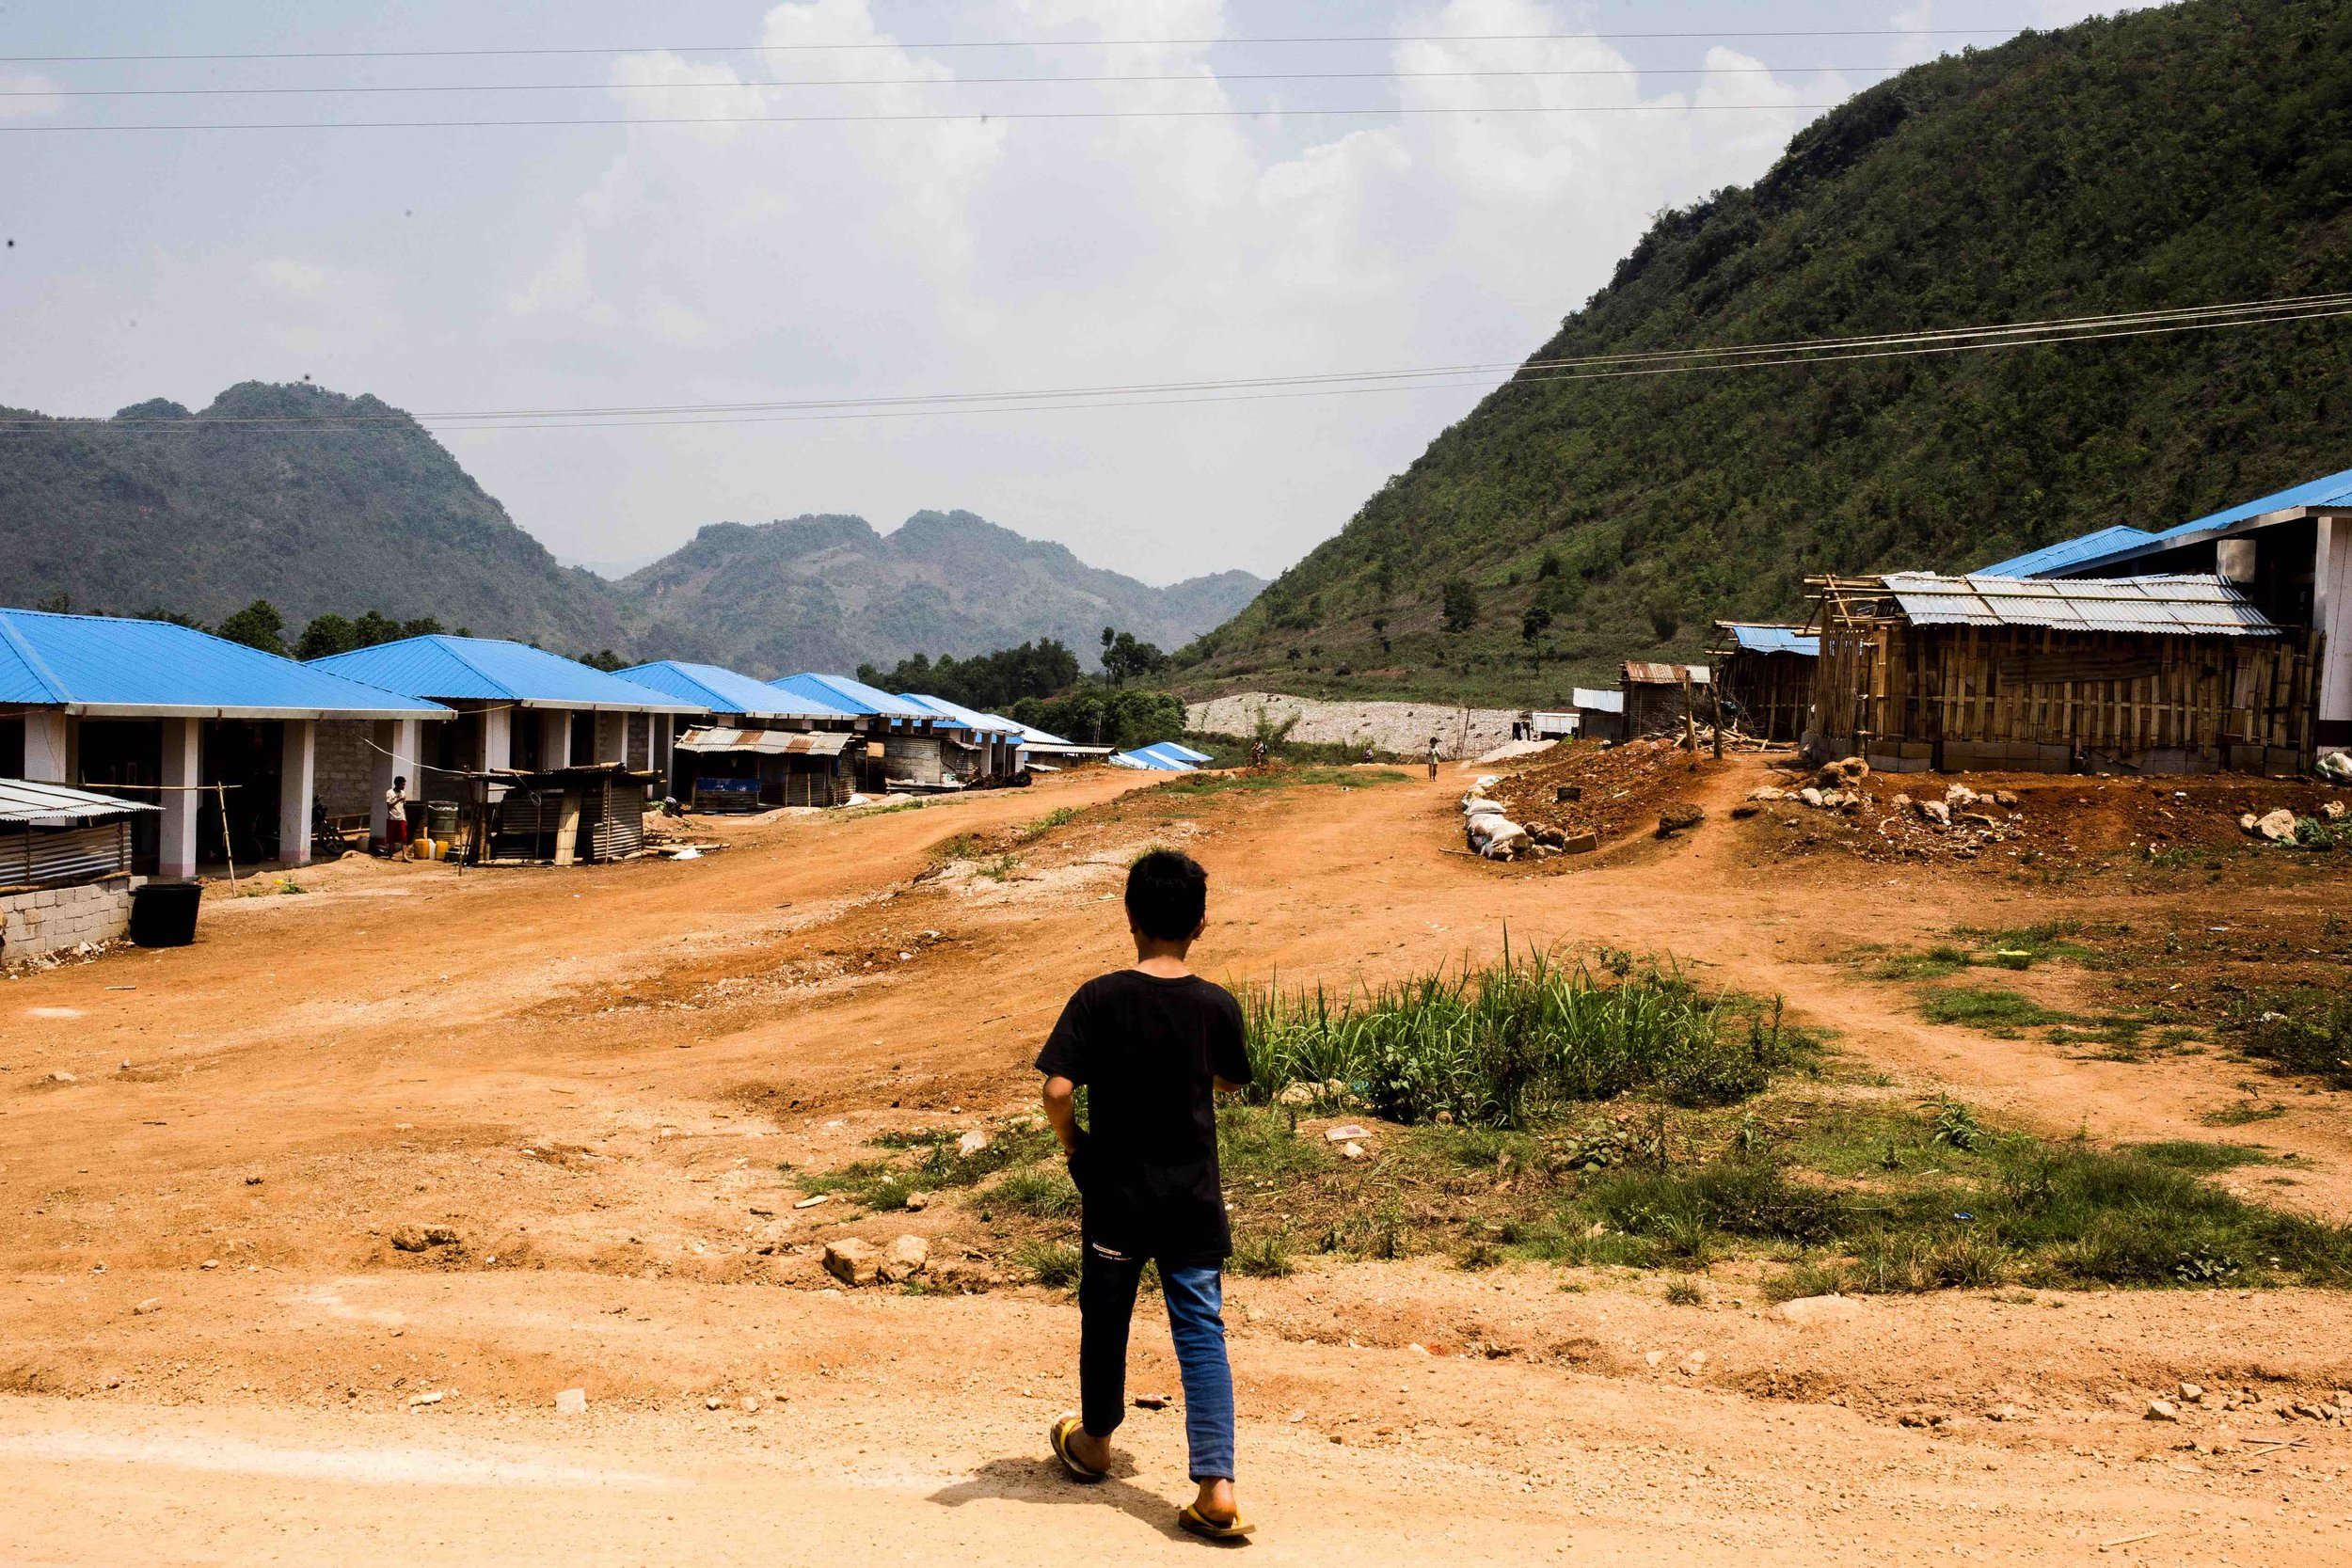 Newly built community housing for refugees coming back from China that was displaced from Feb 2015 conflict. Photo by Ann wang